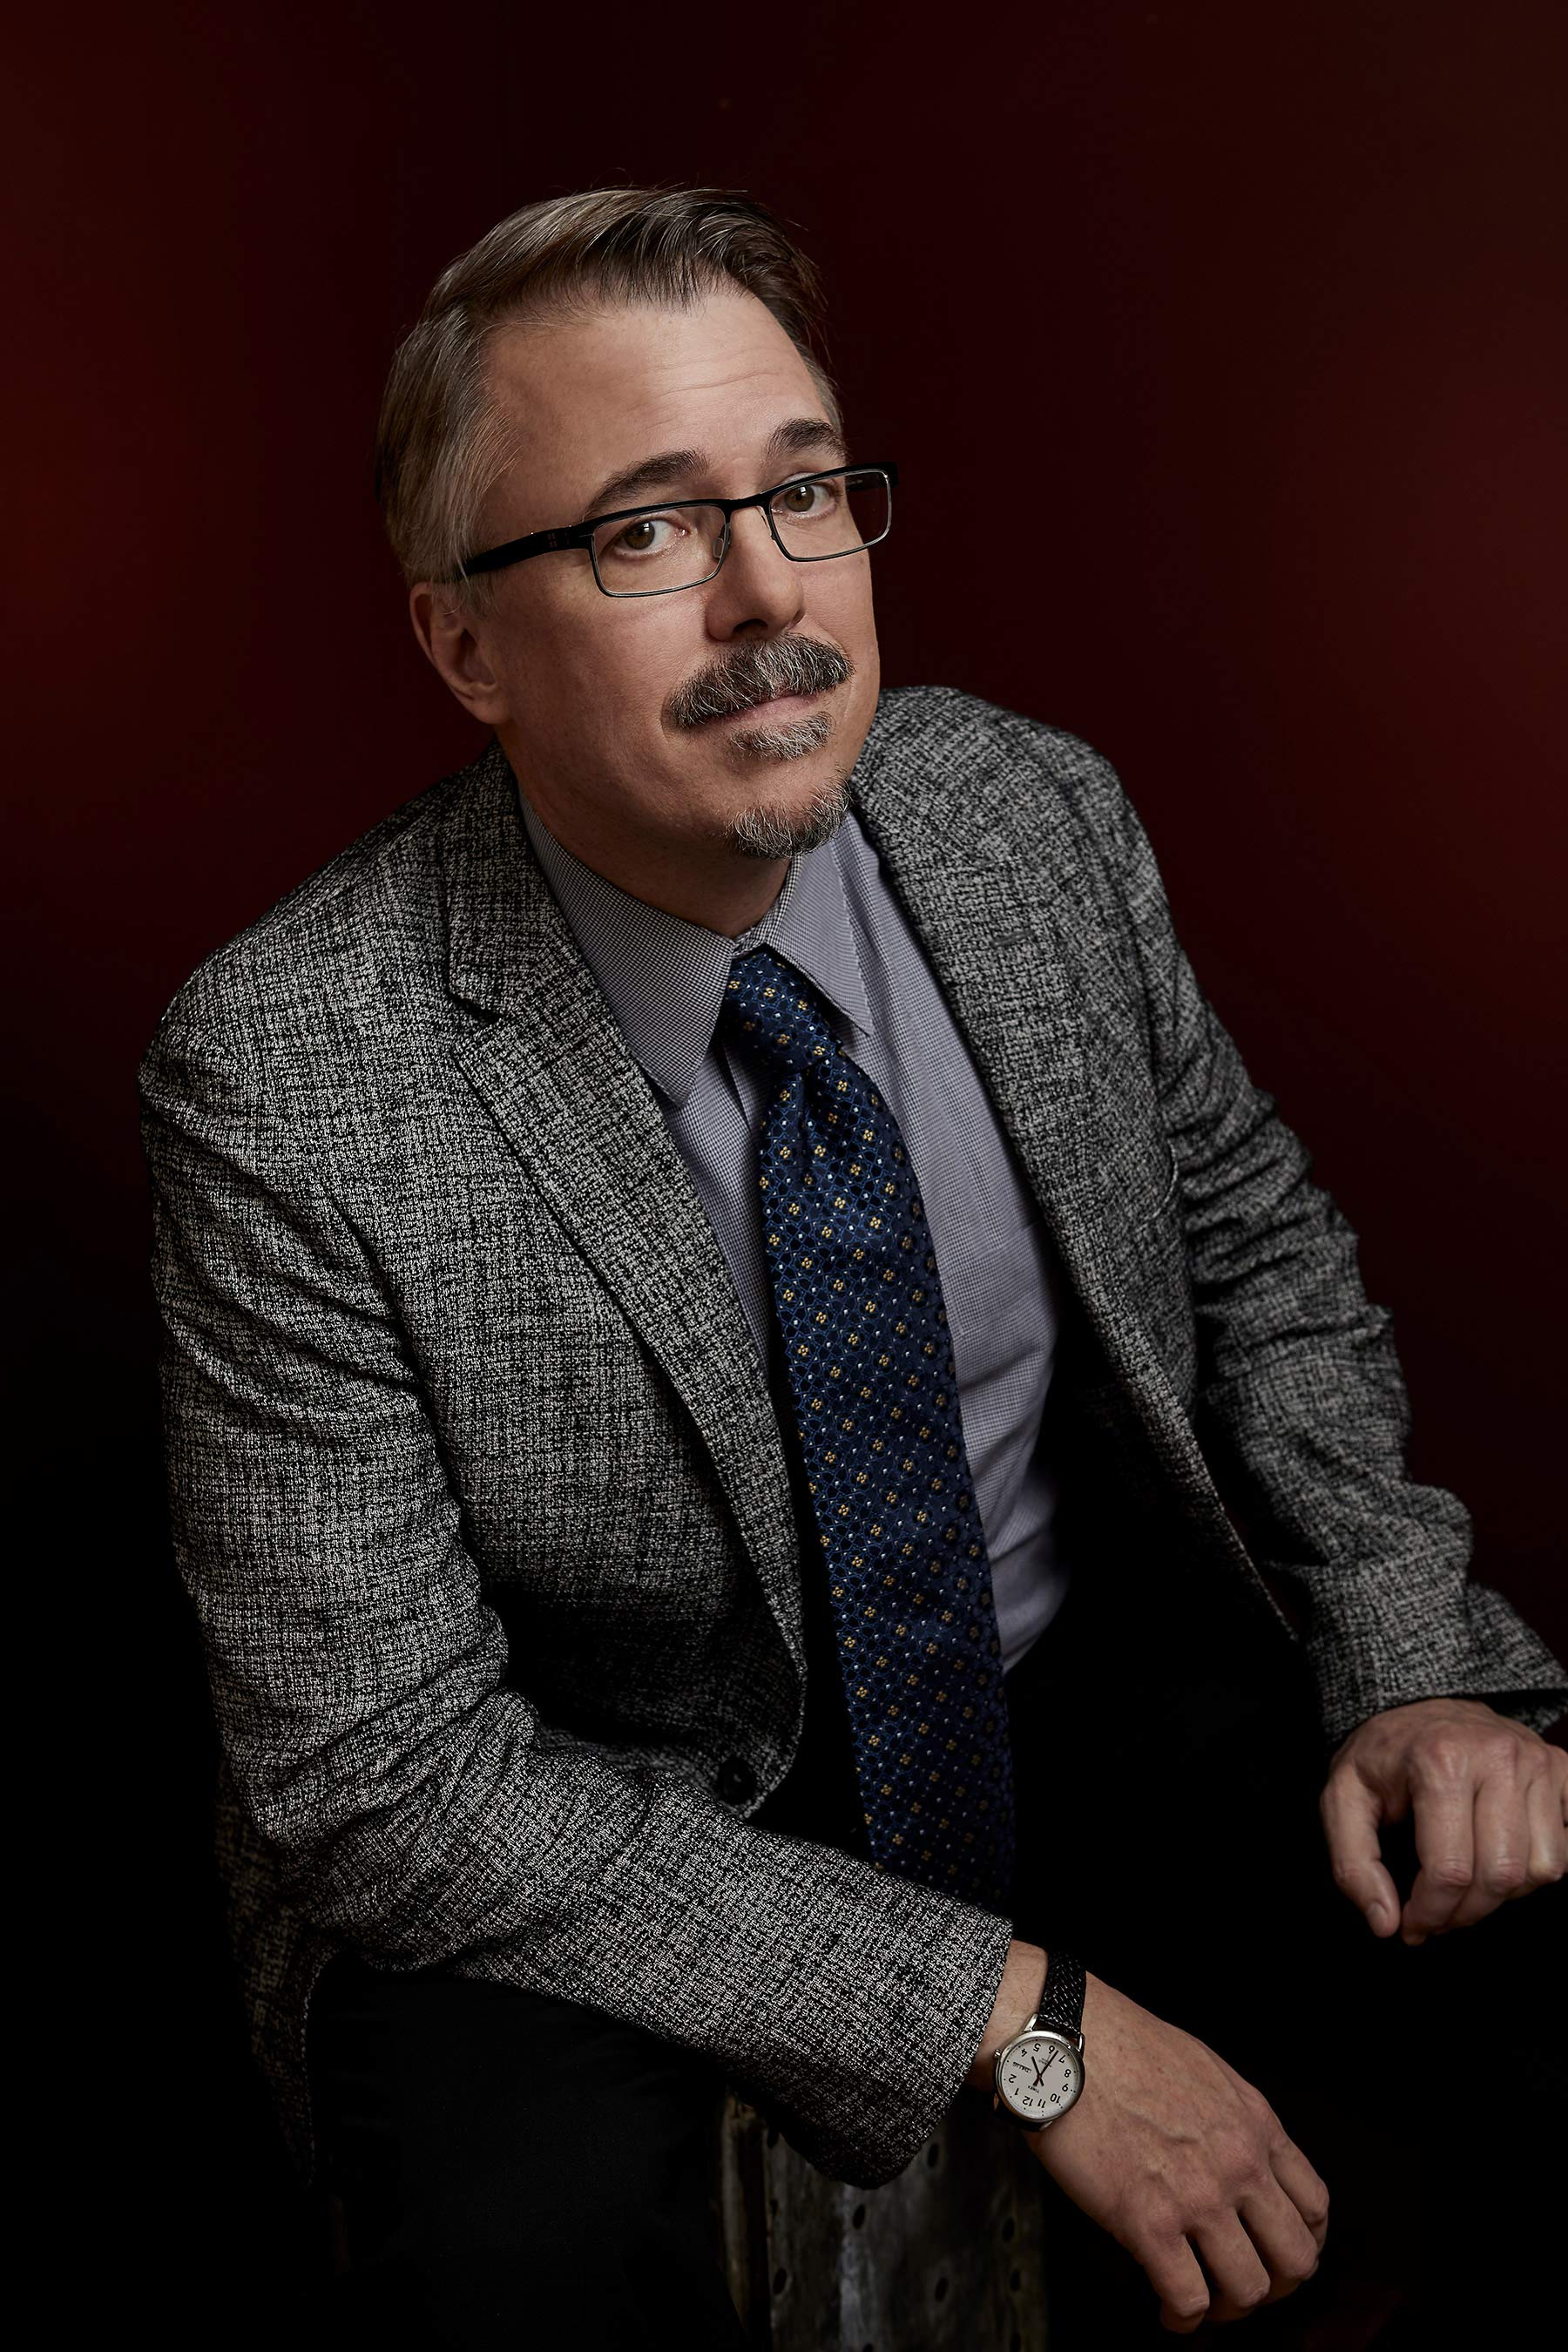 JSquared_GettyPeople_BetterCallSaul_VinceGilligan_2359F